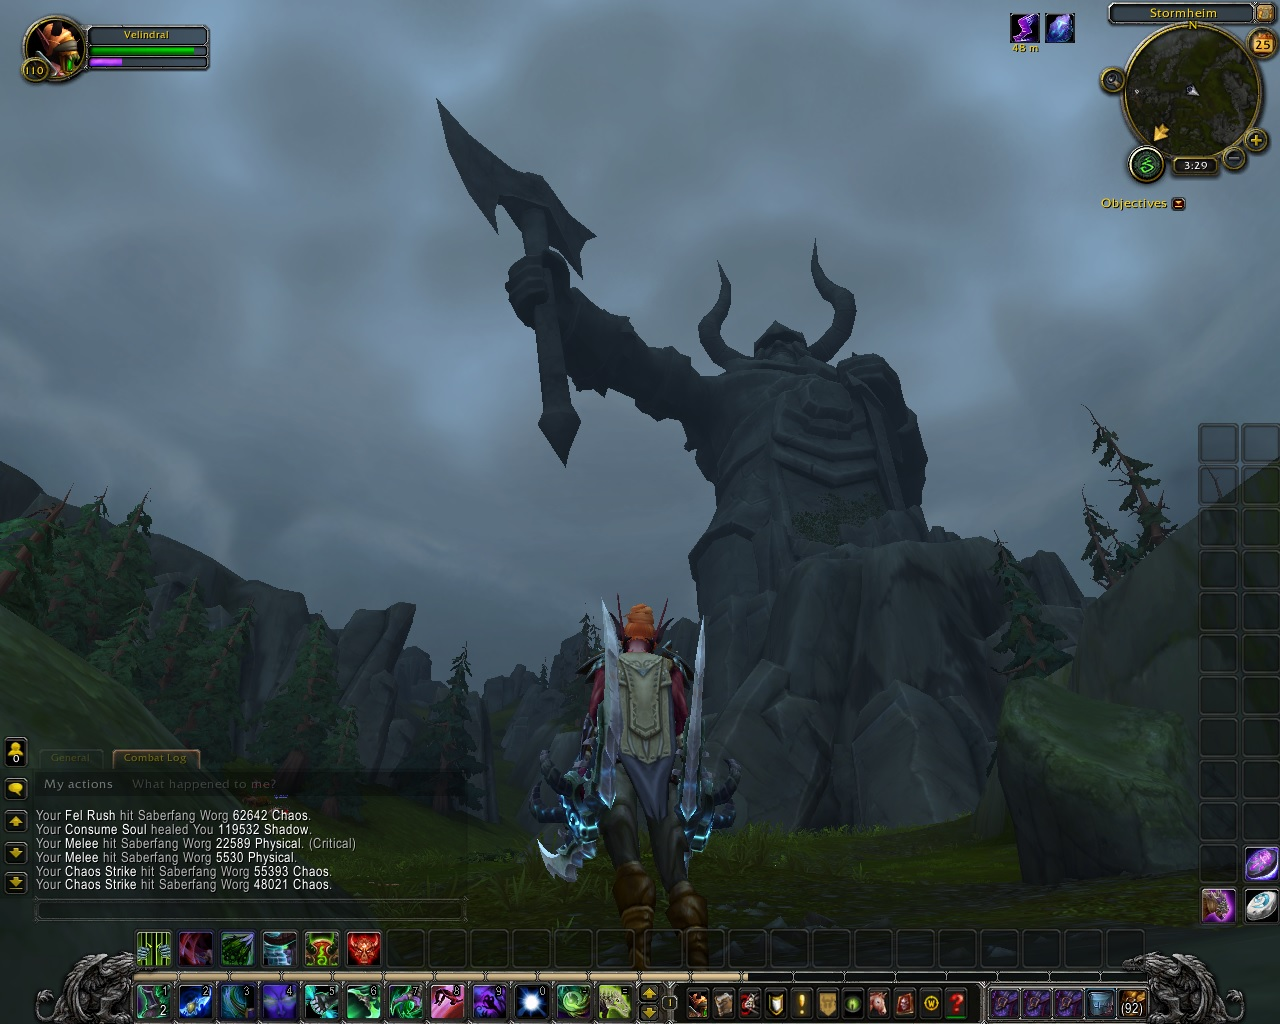 Stormheim viking statues not actually to scale.